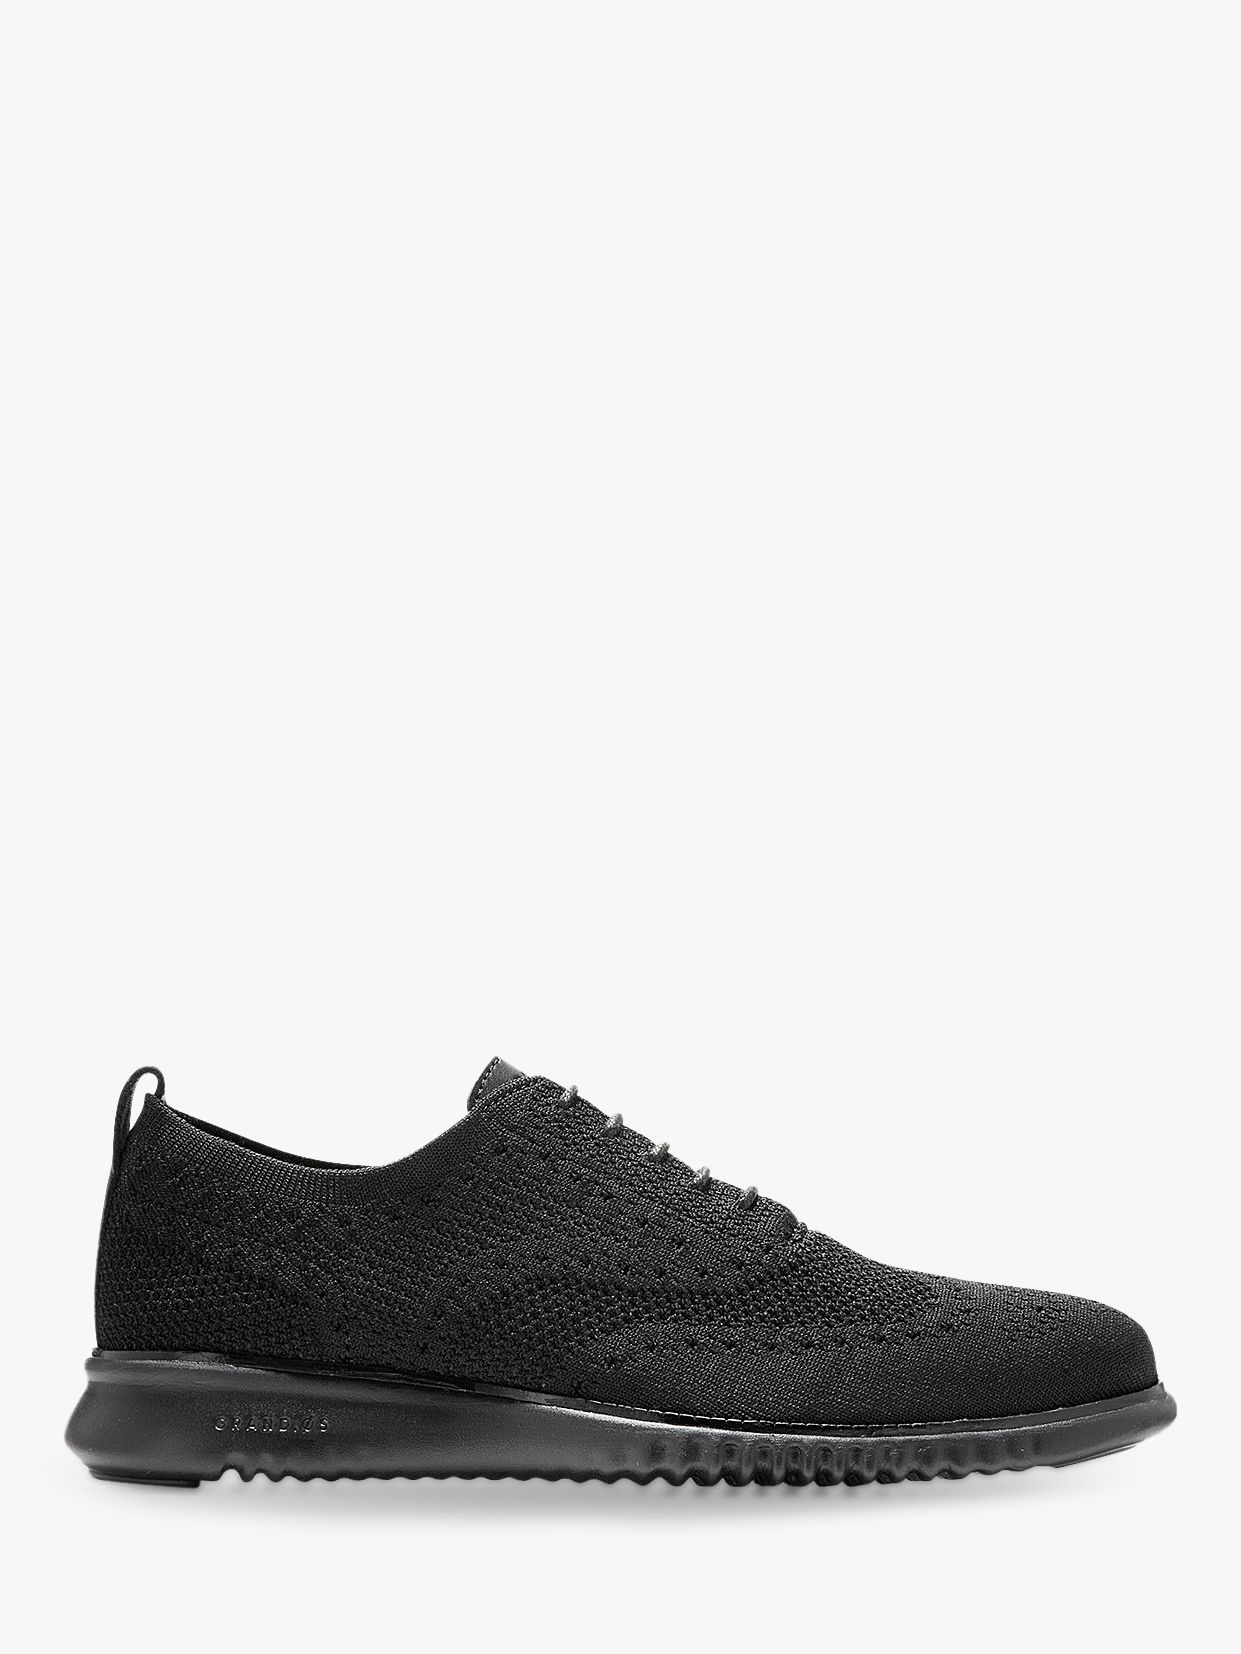 Cole Haan Cole Haan Zerogrand Stitchlite Knitted Oxford Shoes, Black